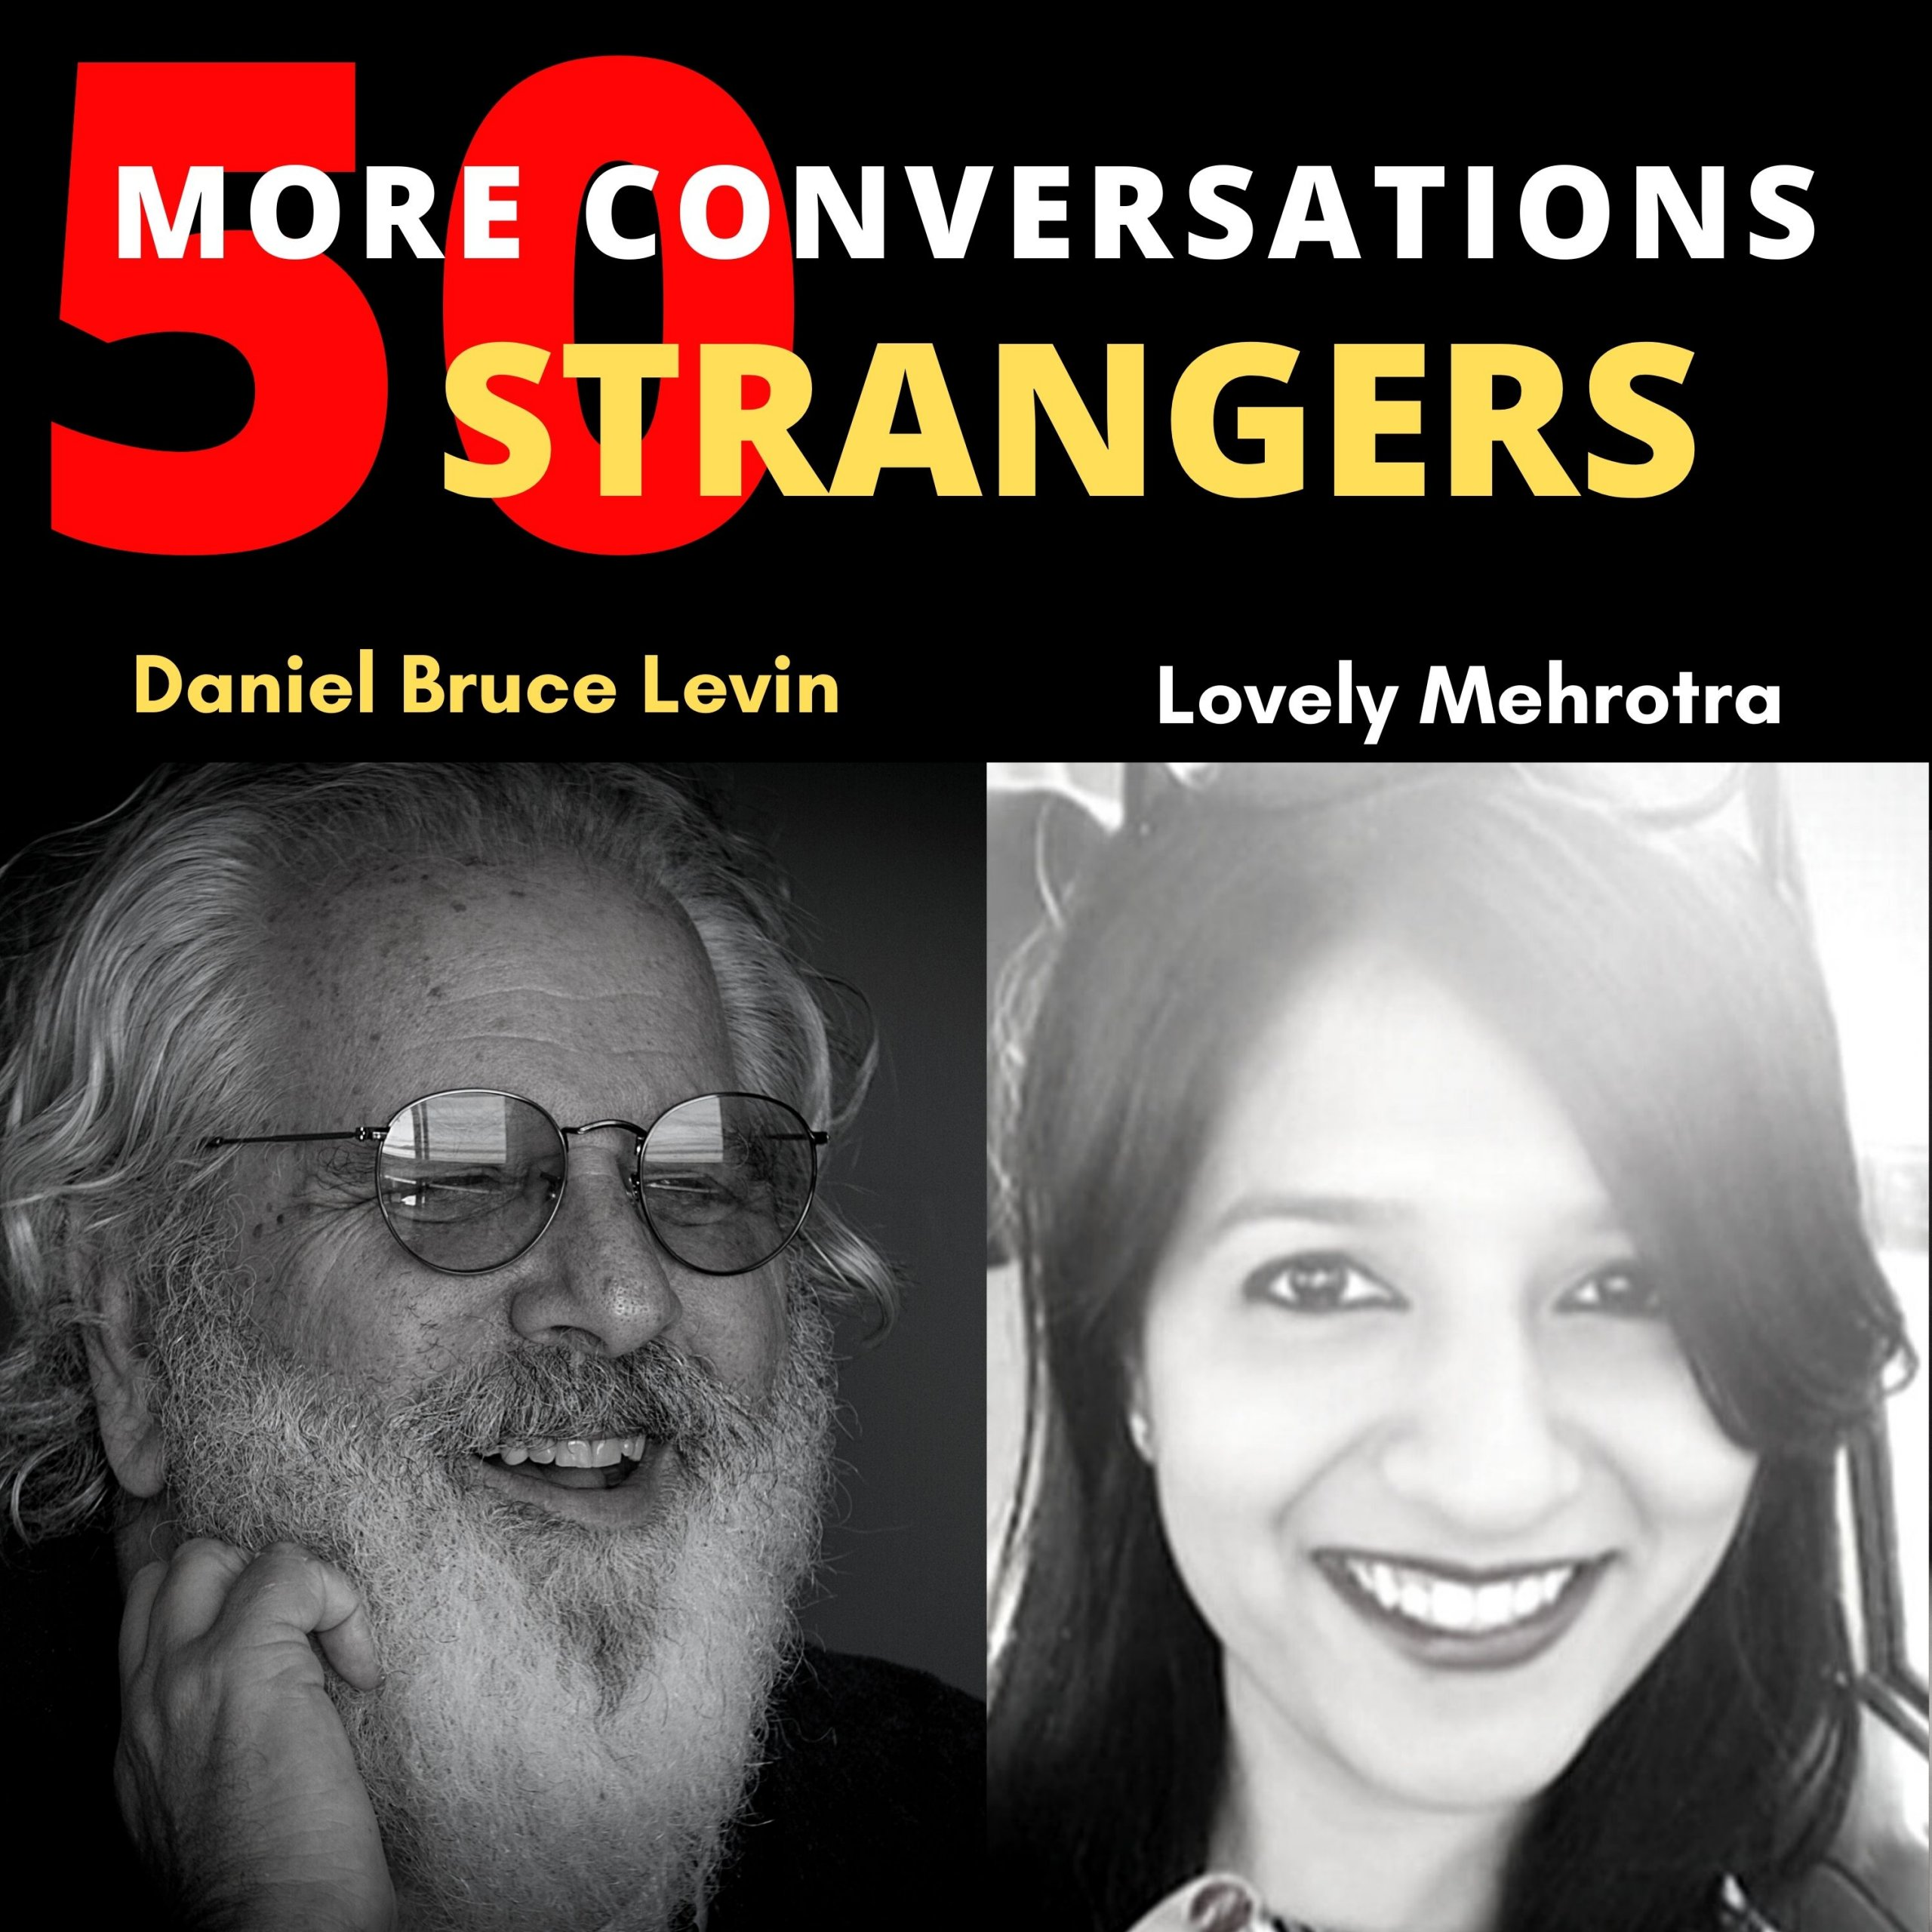 50 More Conversations with 5o More Strangers with Lovely Mehrotra